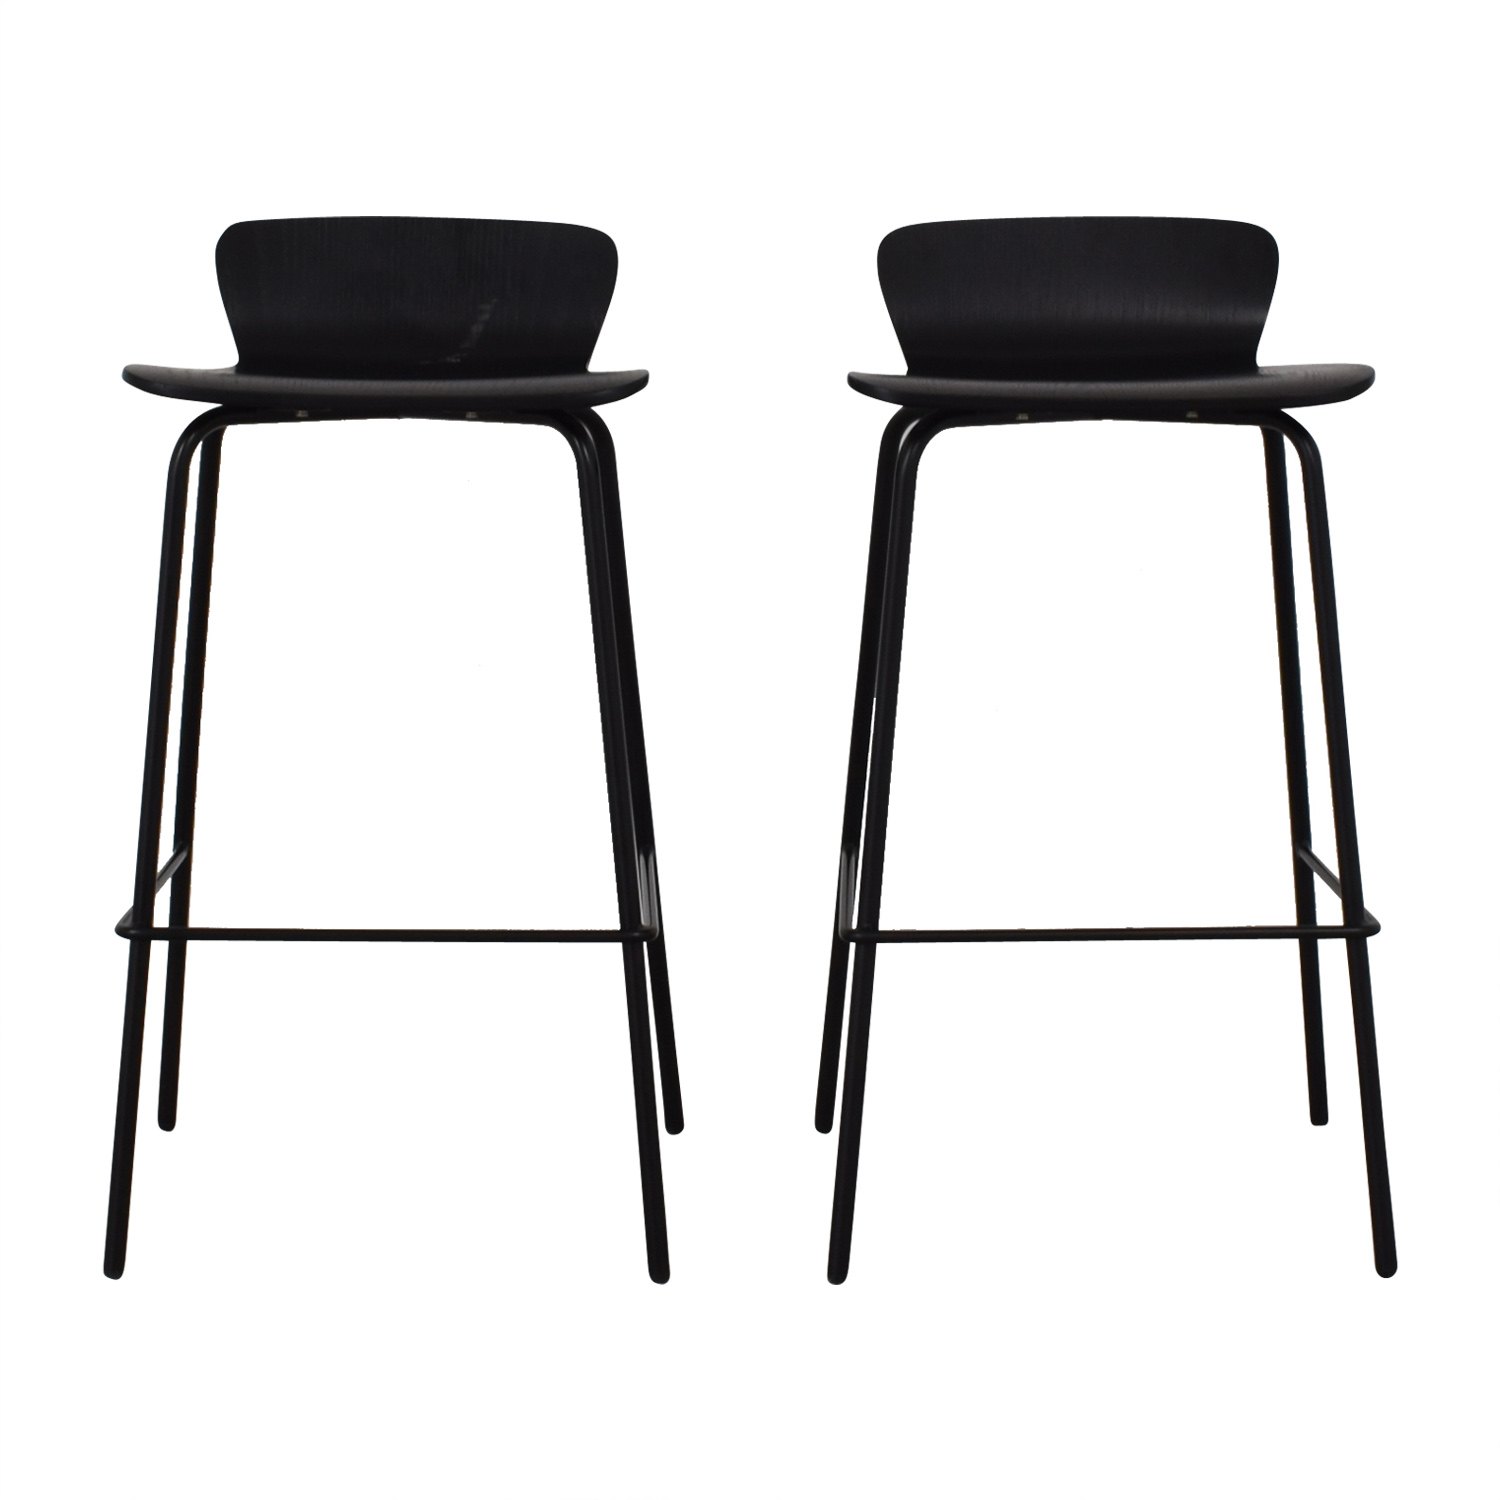 Crate & Barrel Crate & Barrel Felix Black Counter Stools black